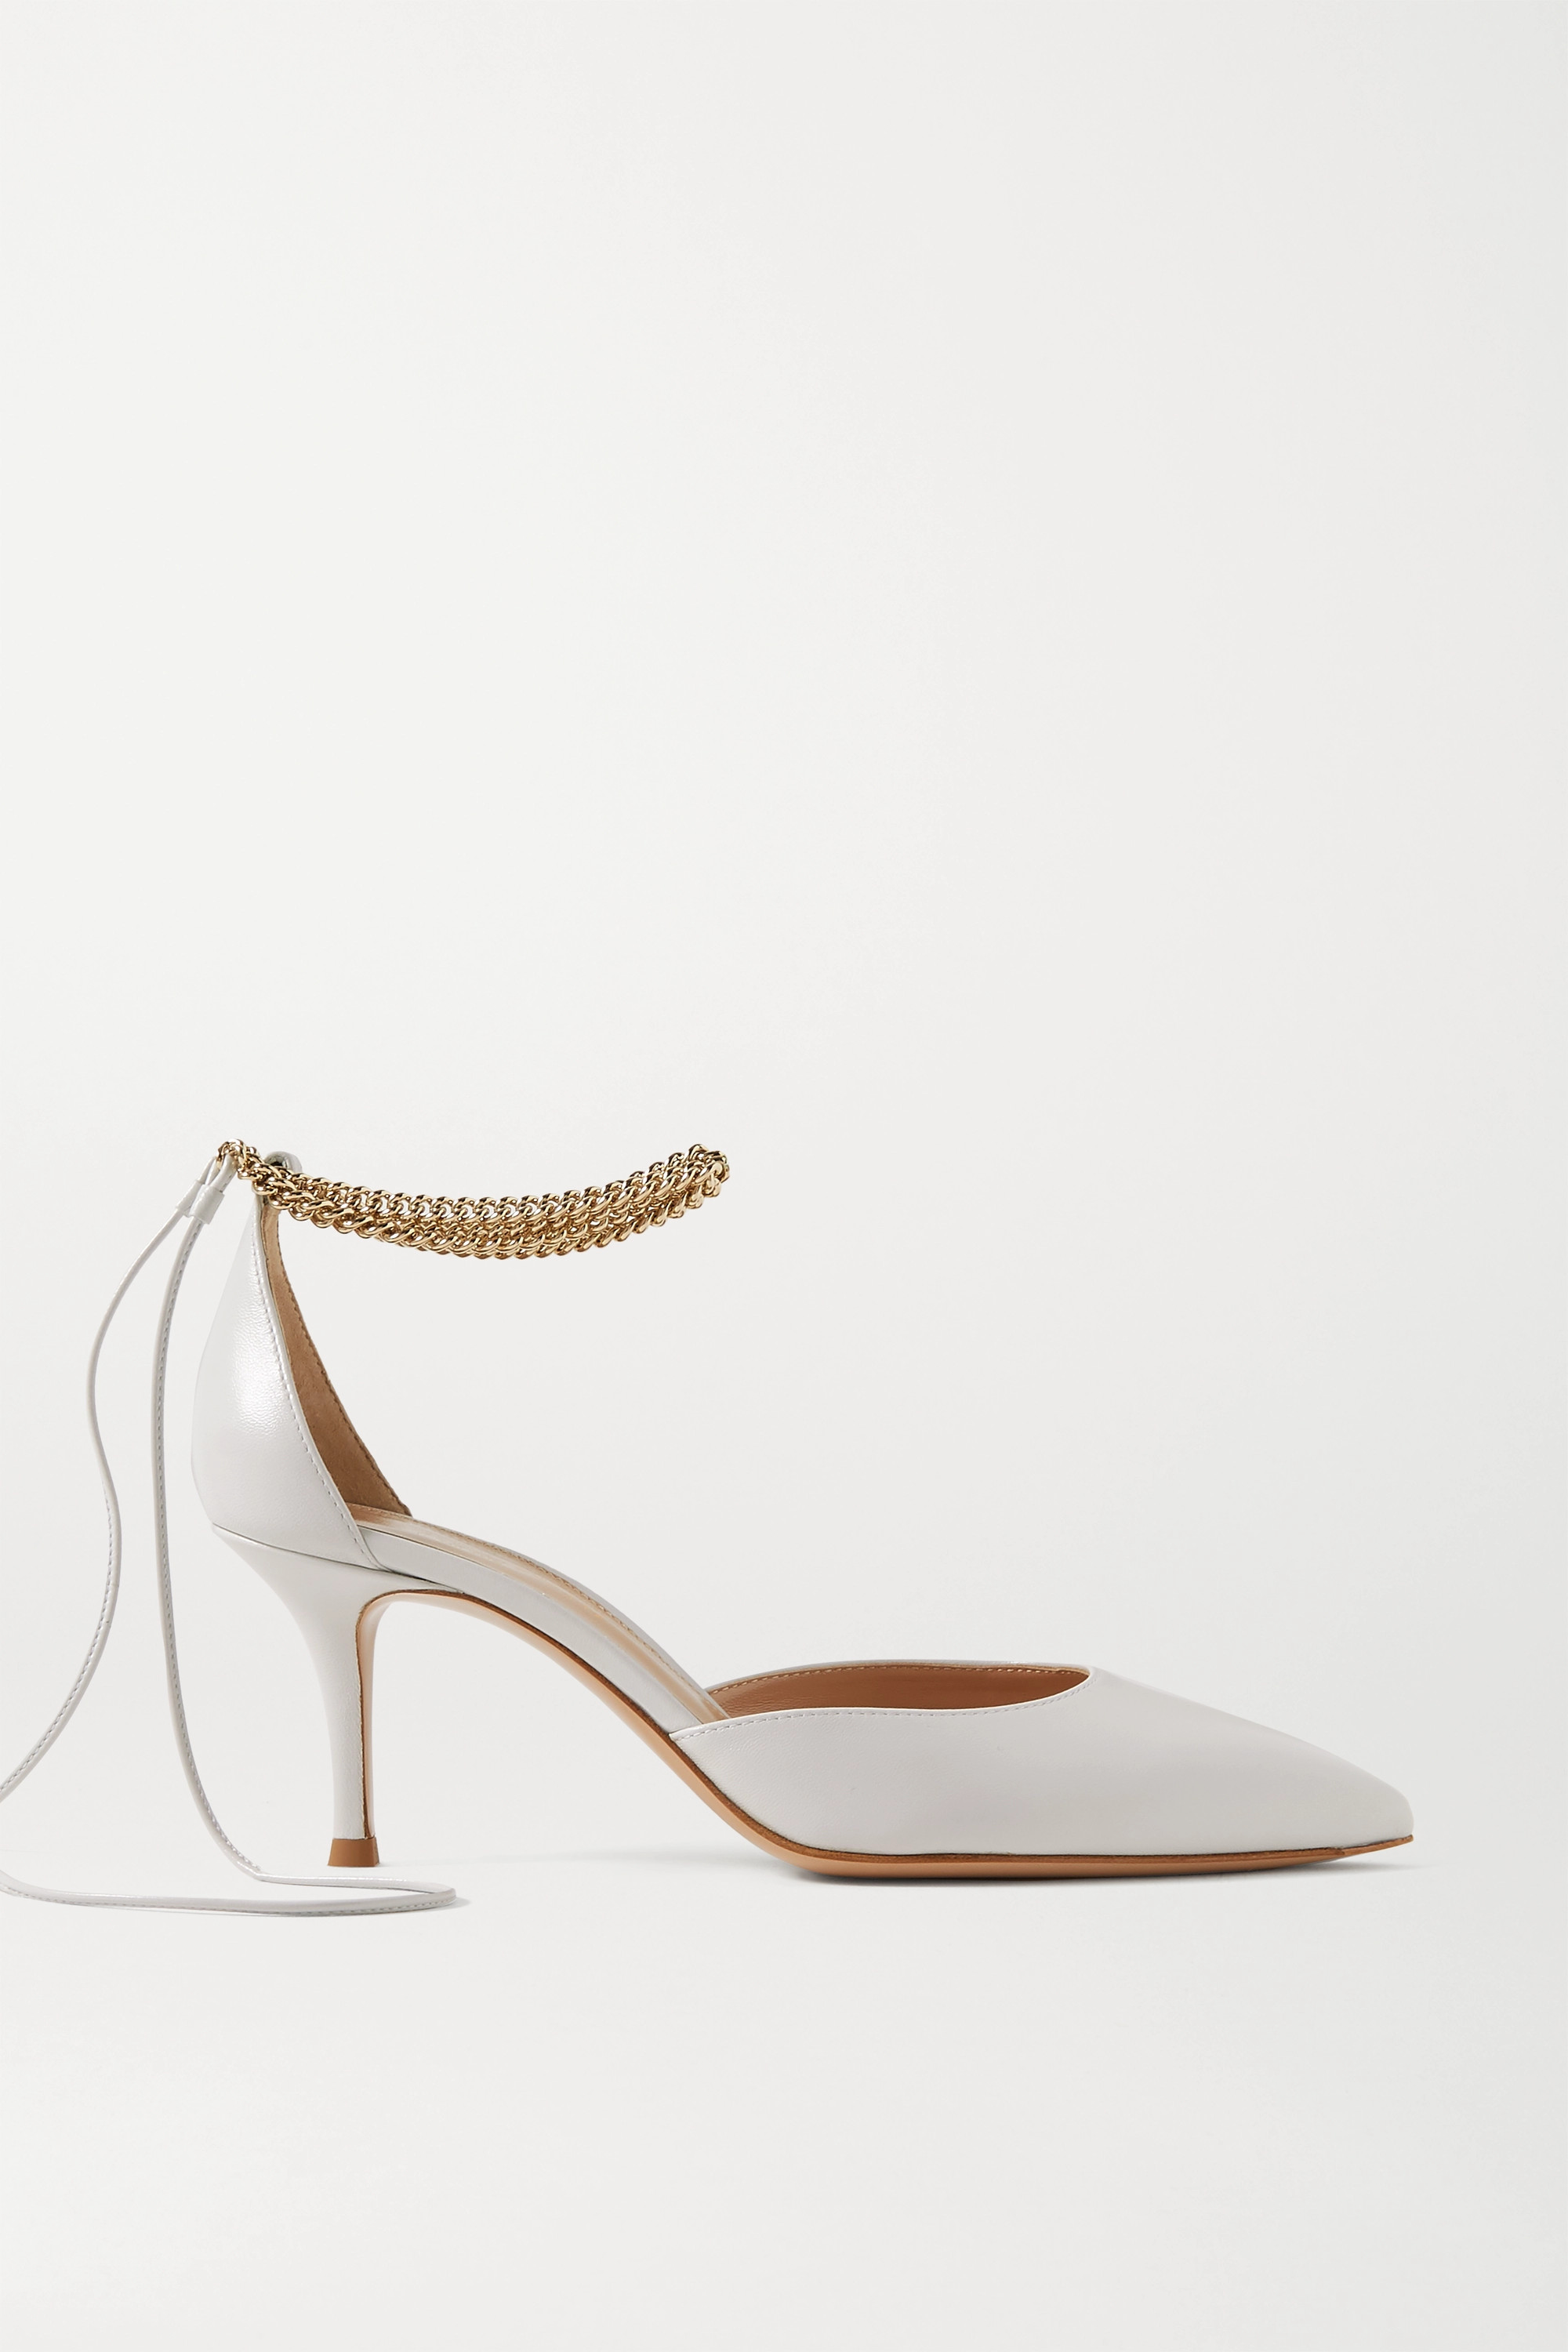 Gianvito Rossi Kira 70 chain-embellished leather pumps